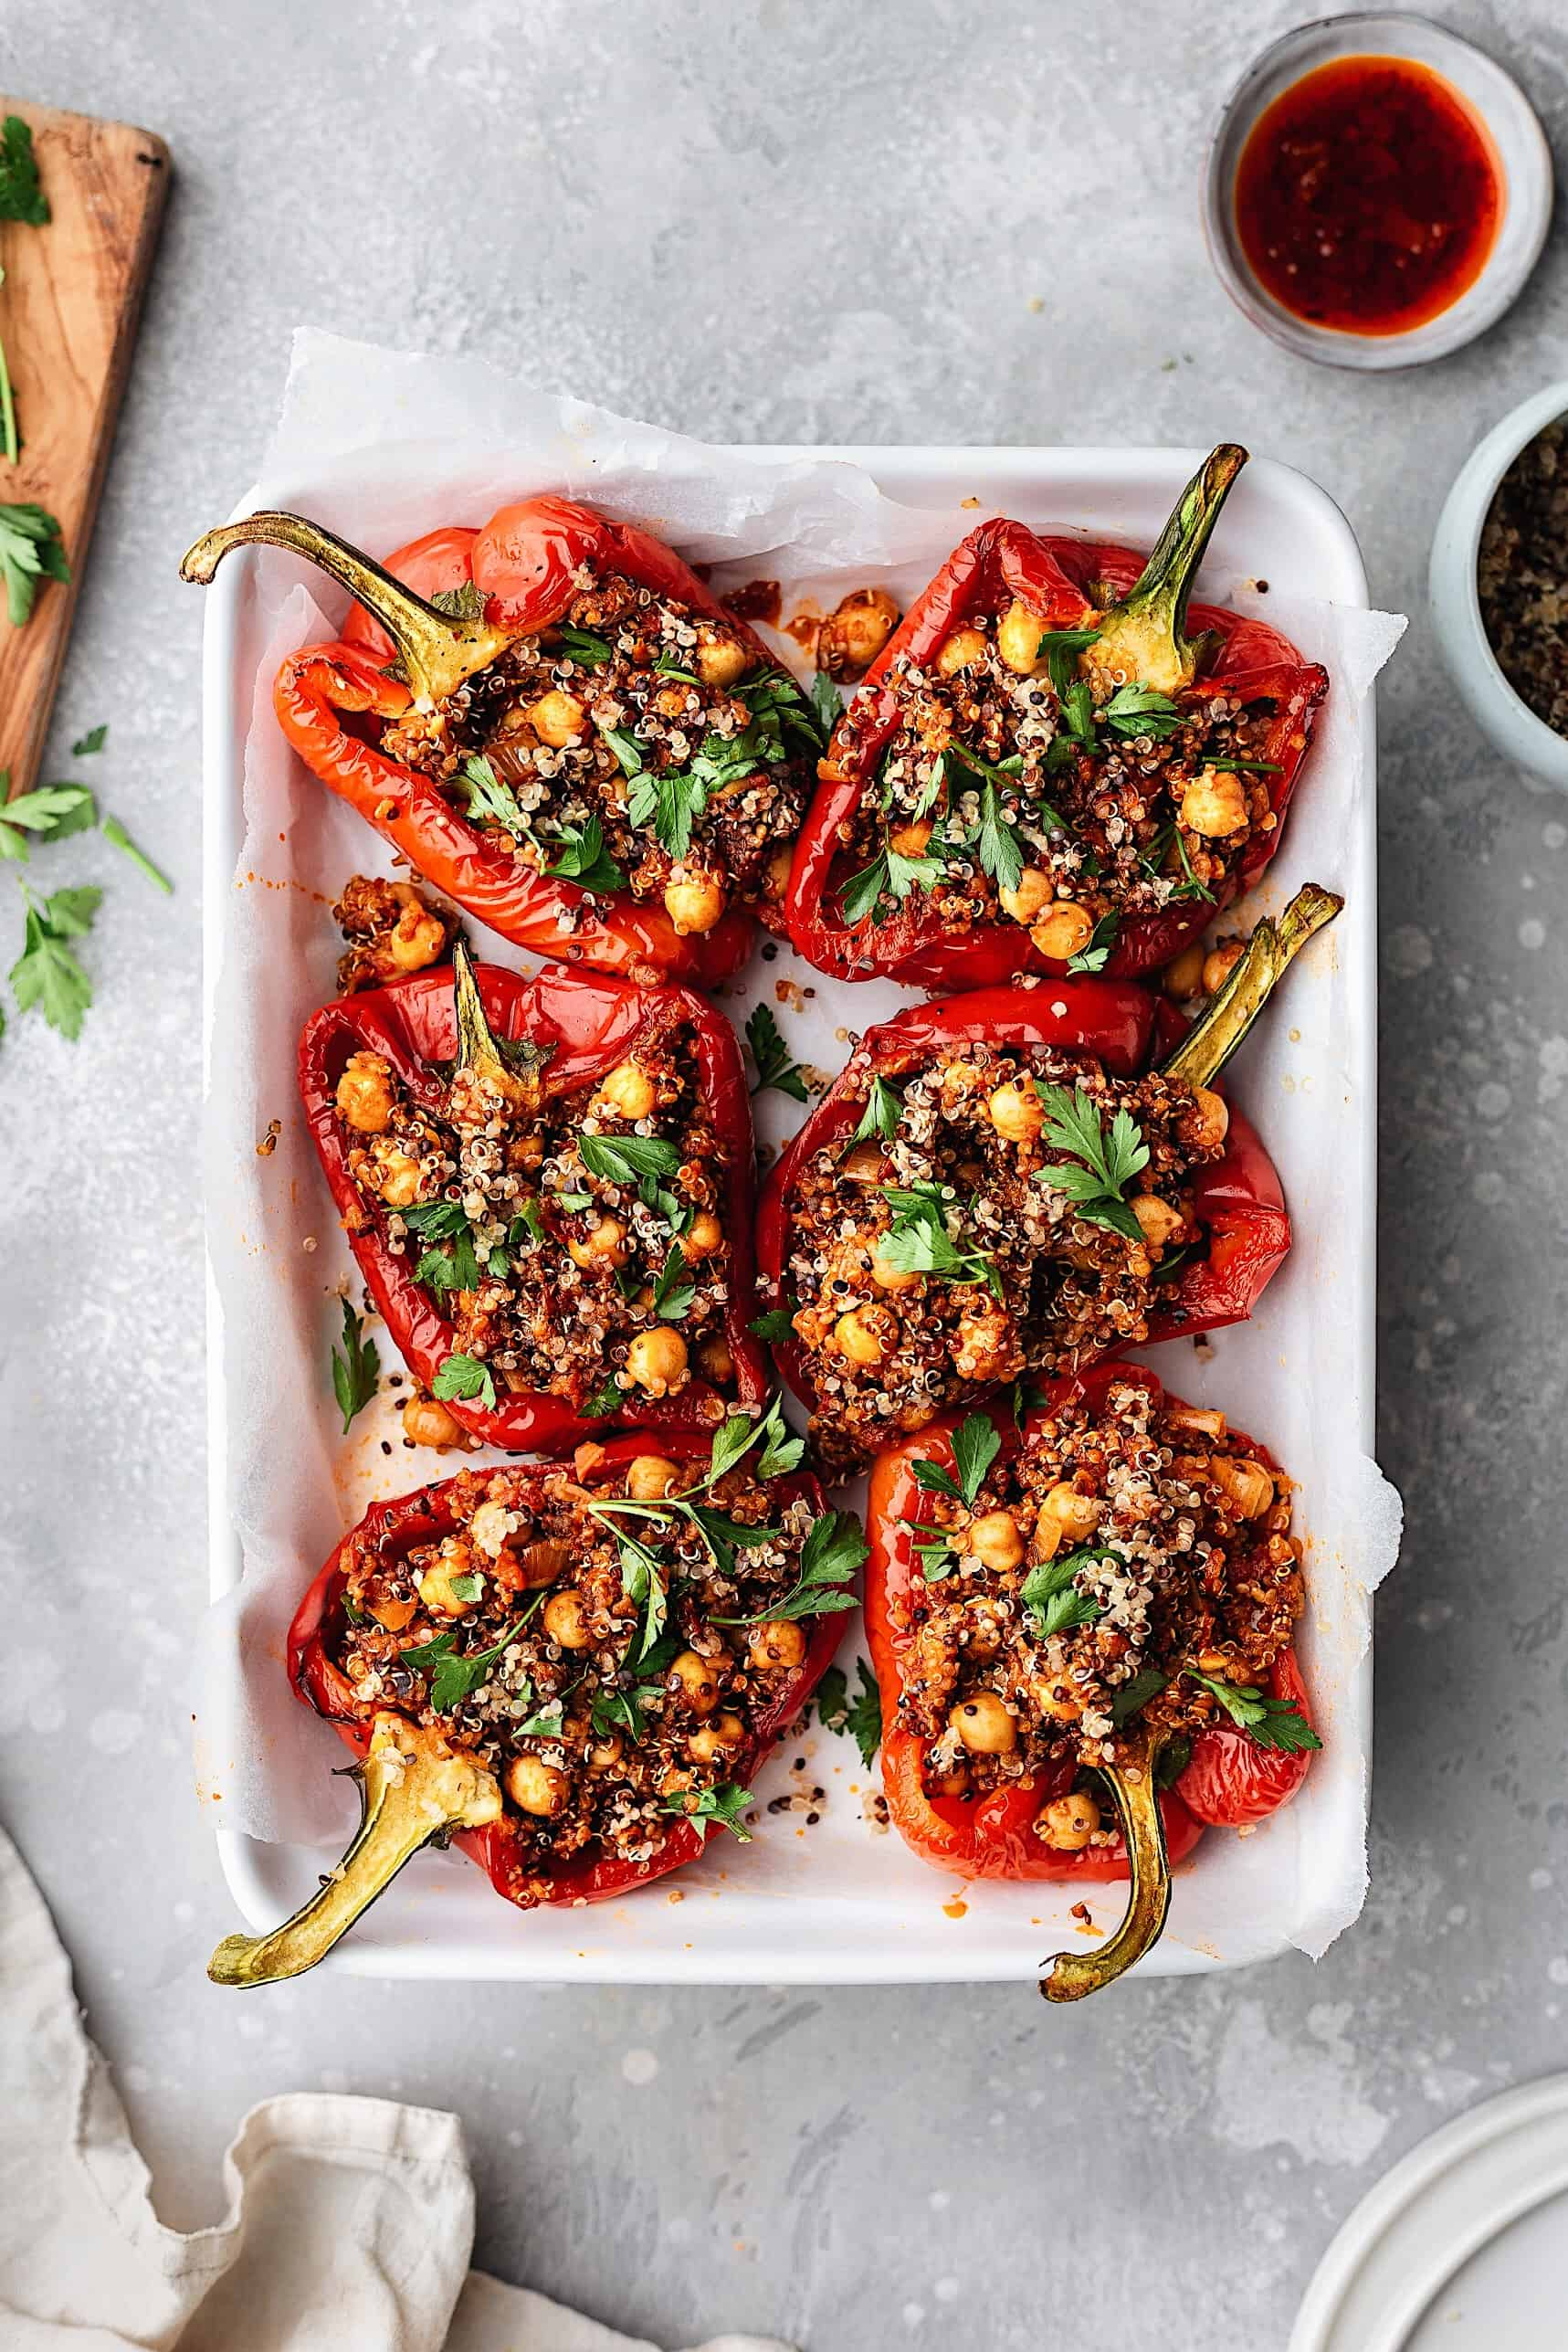 Chickpea and Quinoa Harissa Stuffed Peppers #peppers #harissa #vegan #recipe #vegetarian